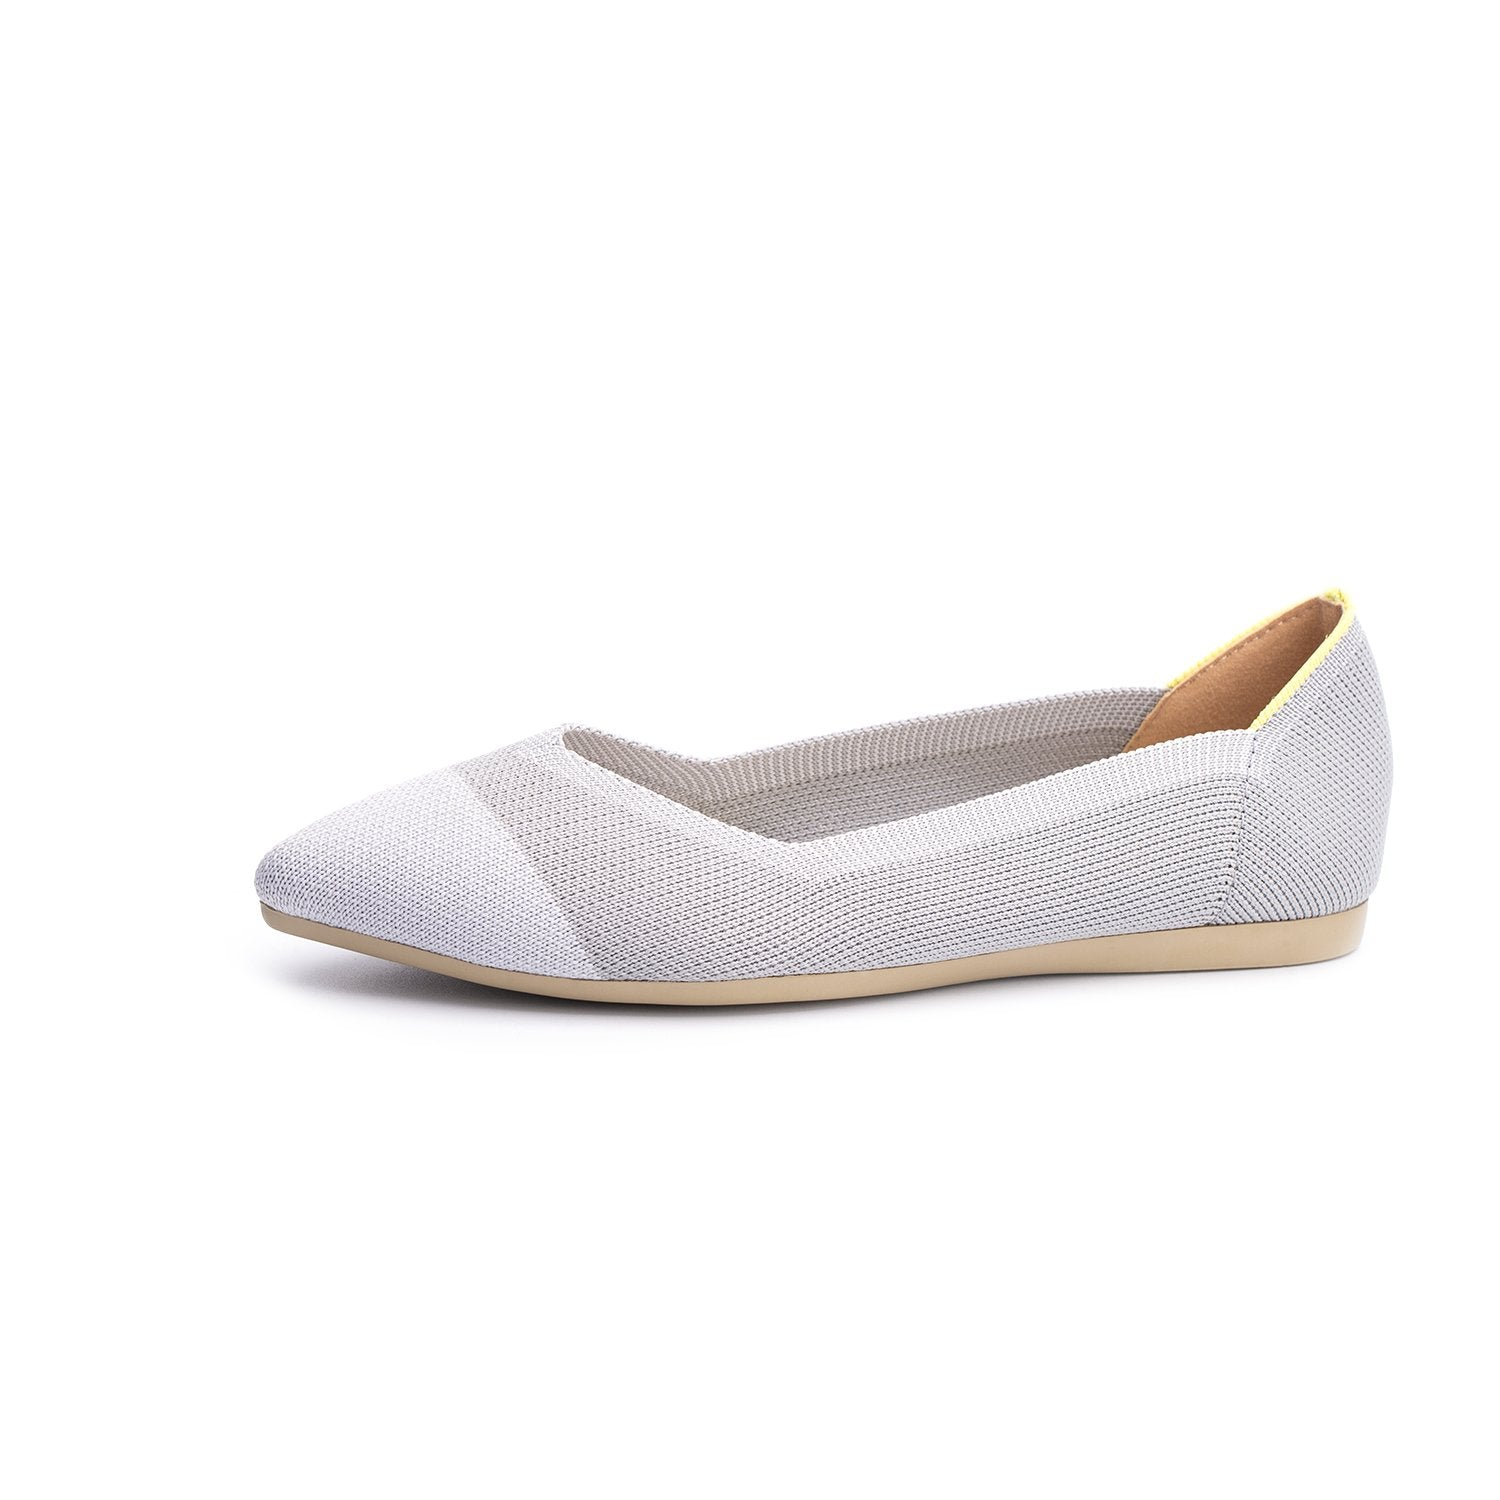 Womens Flats Shoes Pointed Toe Lightweight Mesh Slip-On Fashion